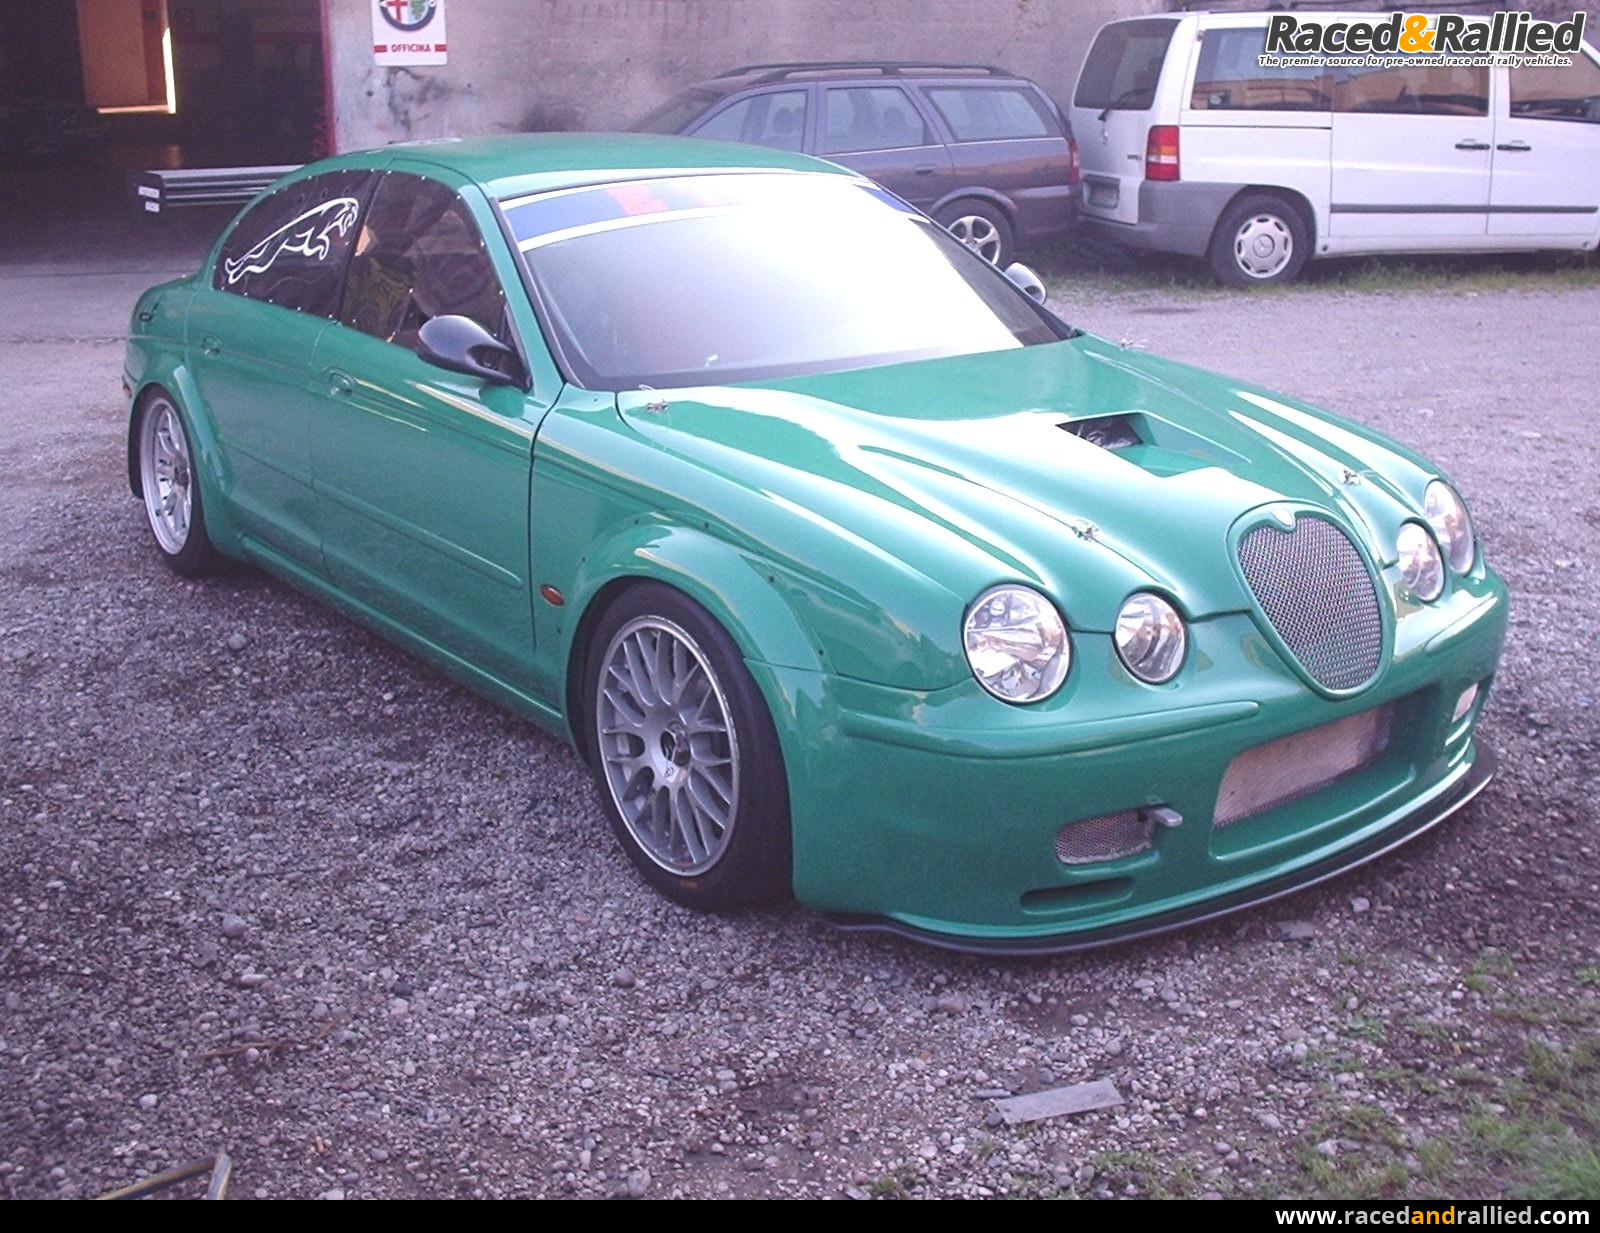 JAGUAR S TYPE 24 H SPECIAL | Race Cars for sale at Raced & Rallied ...